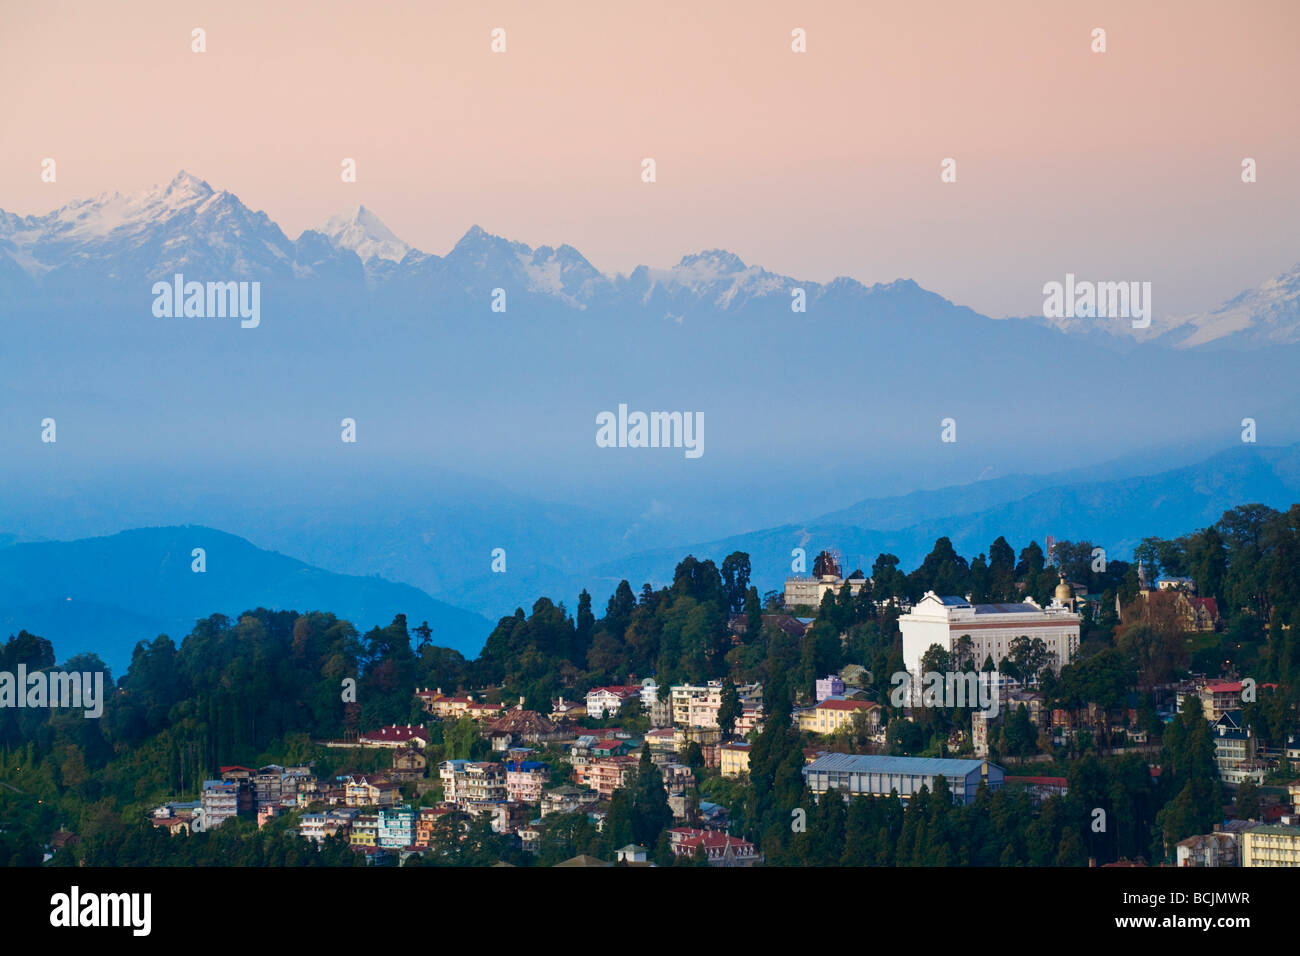 India, West Bengal, Darjeeling, View of City center - Stock Image